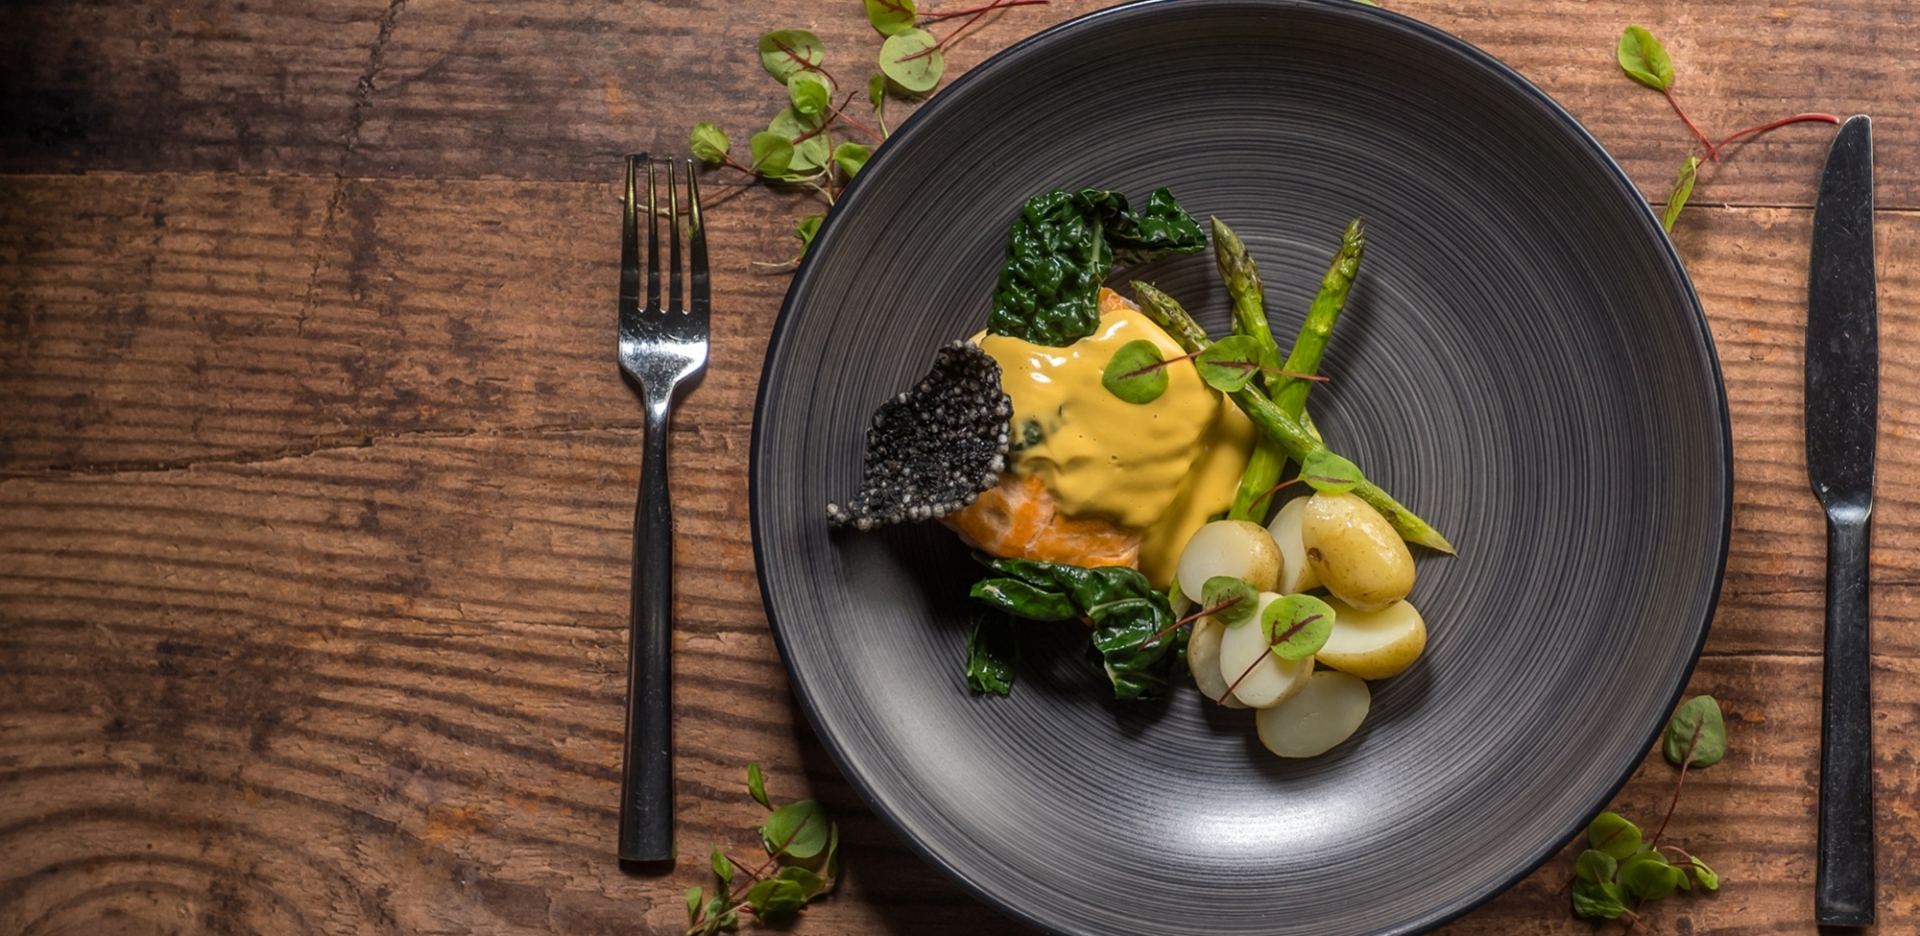 Poached Salmon with Asparagus, Jersey Royals and Hollandaise Sauce